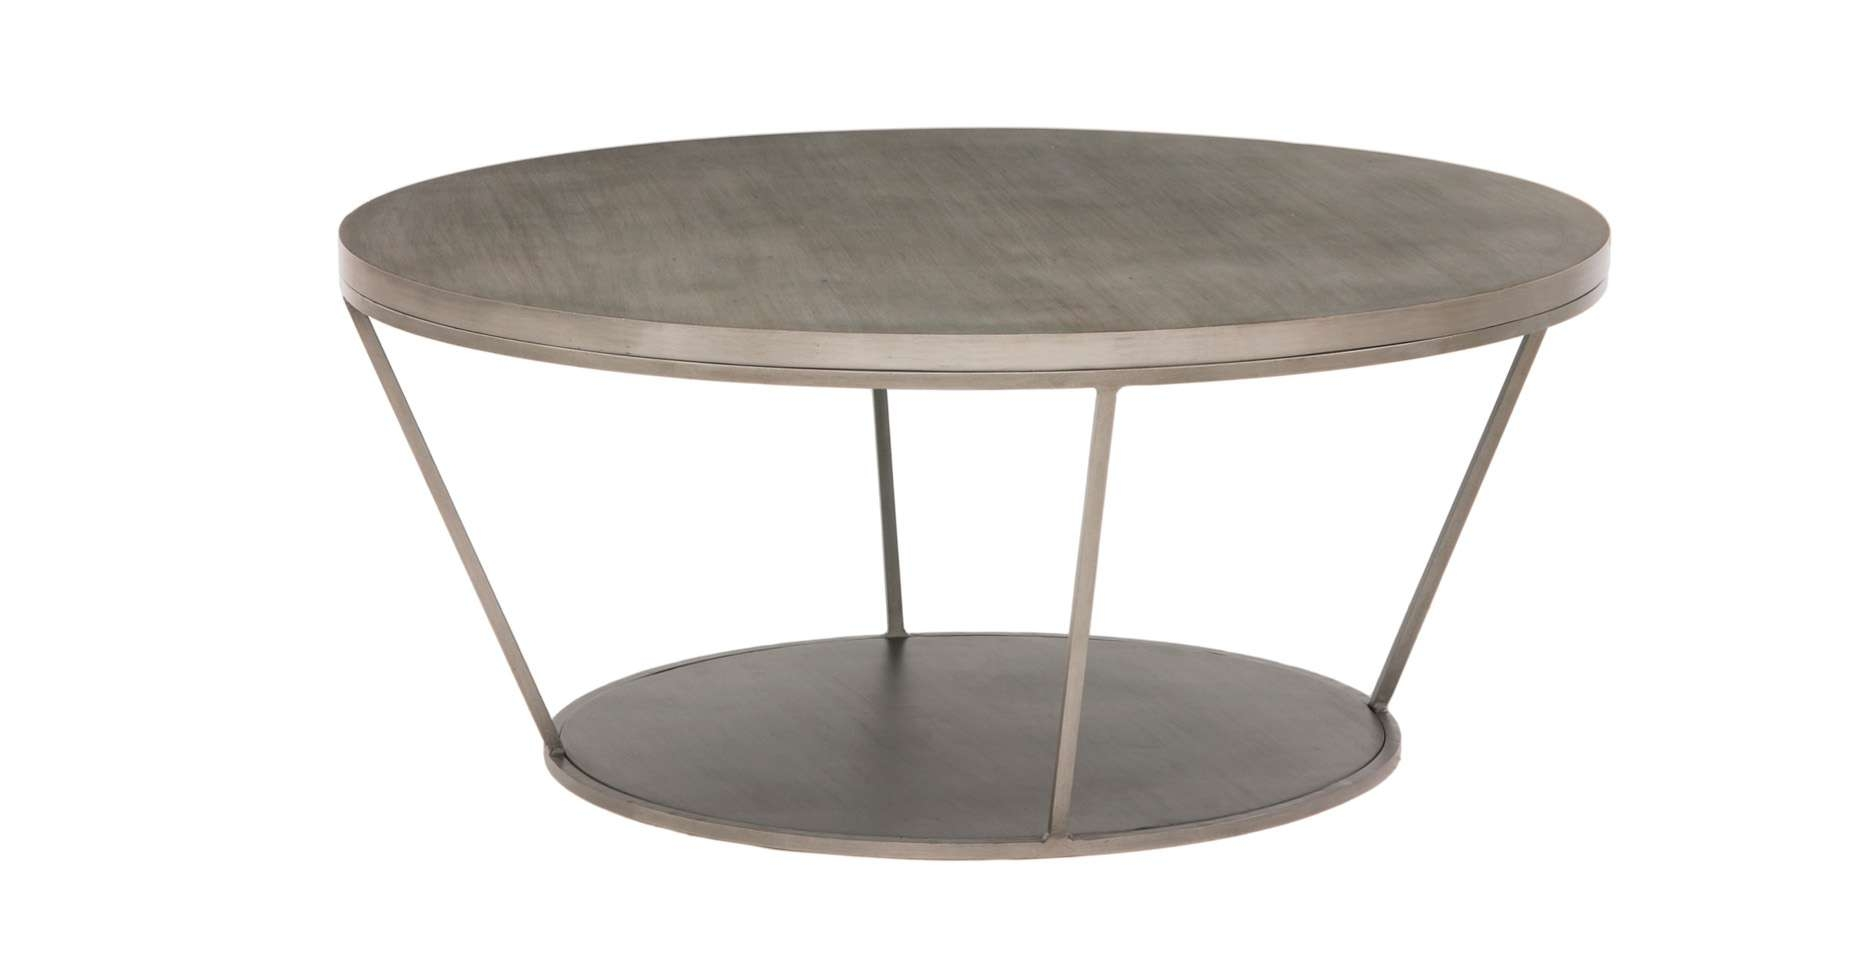 Blair Round Coffee Table In Most Current Round Coffee Tables (View 7 of 20)